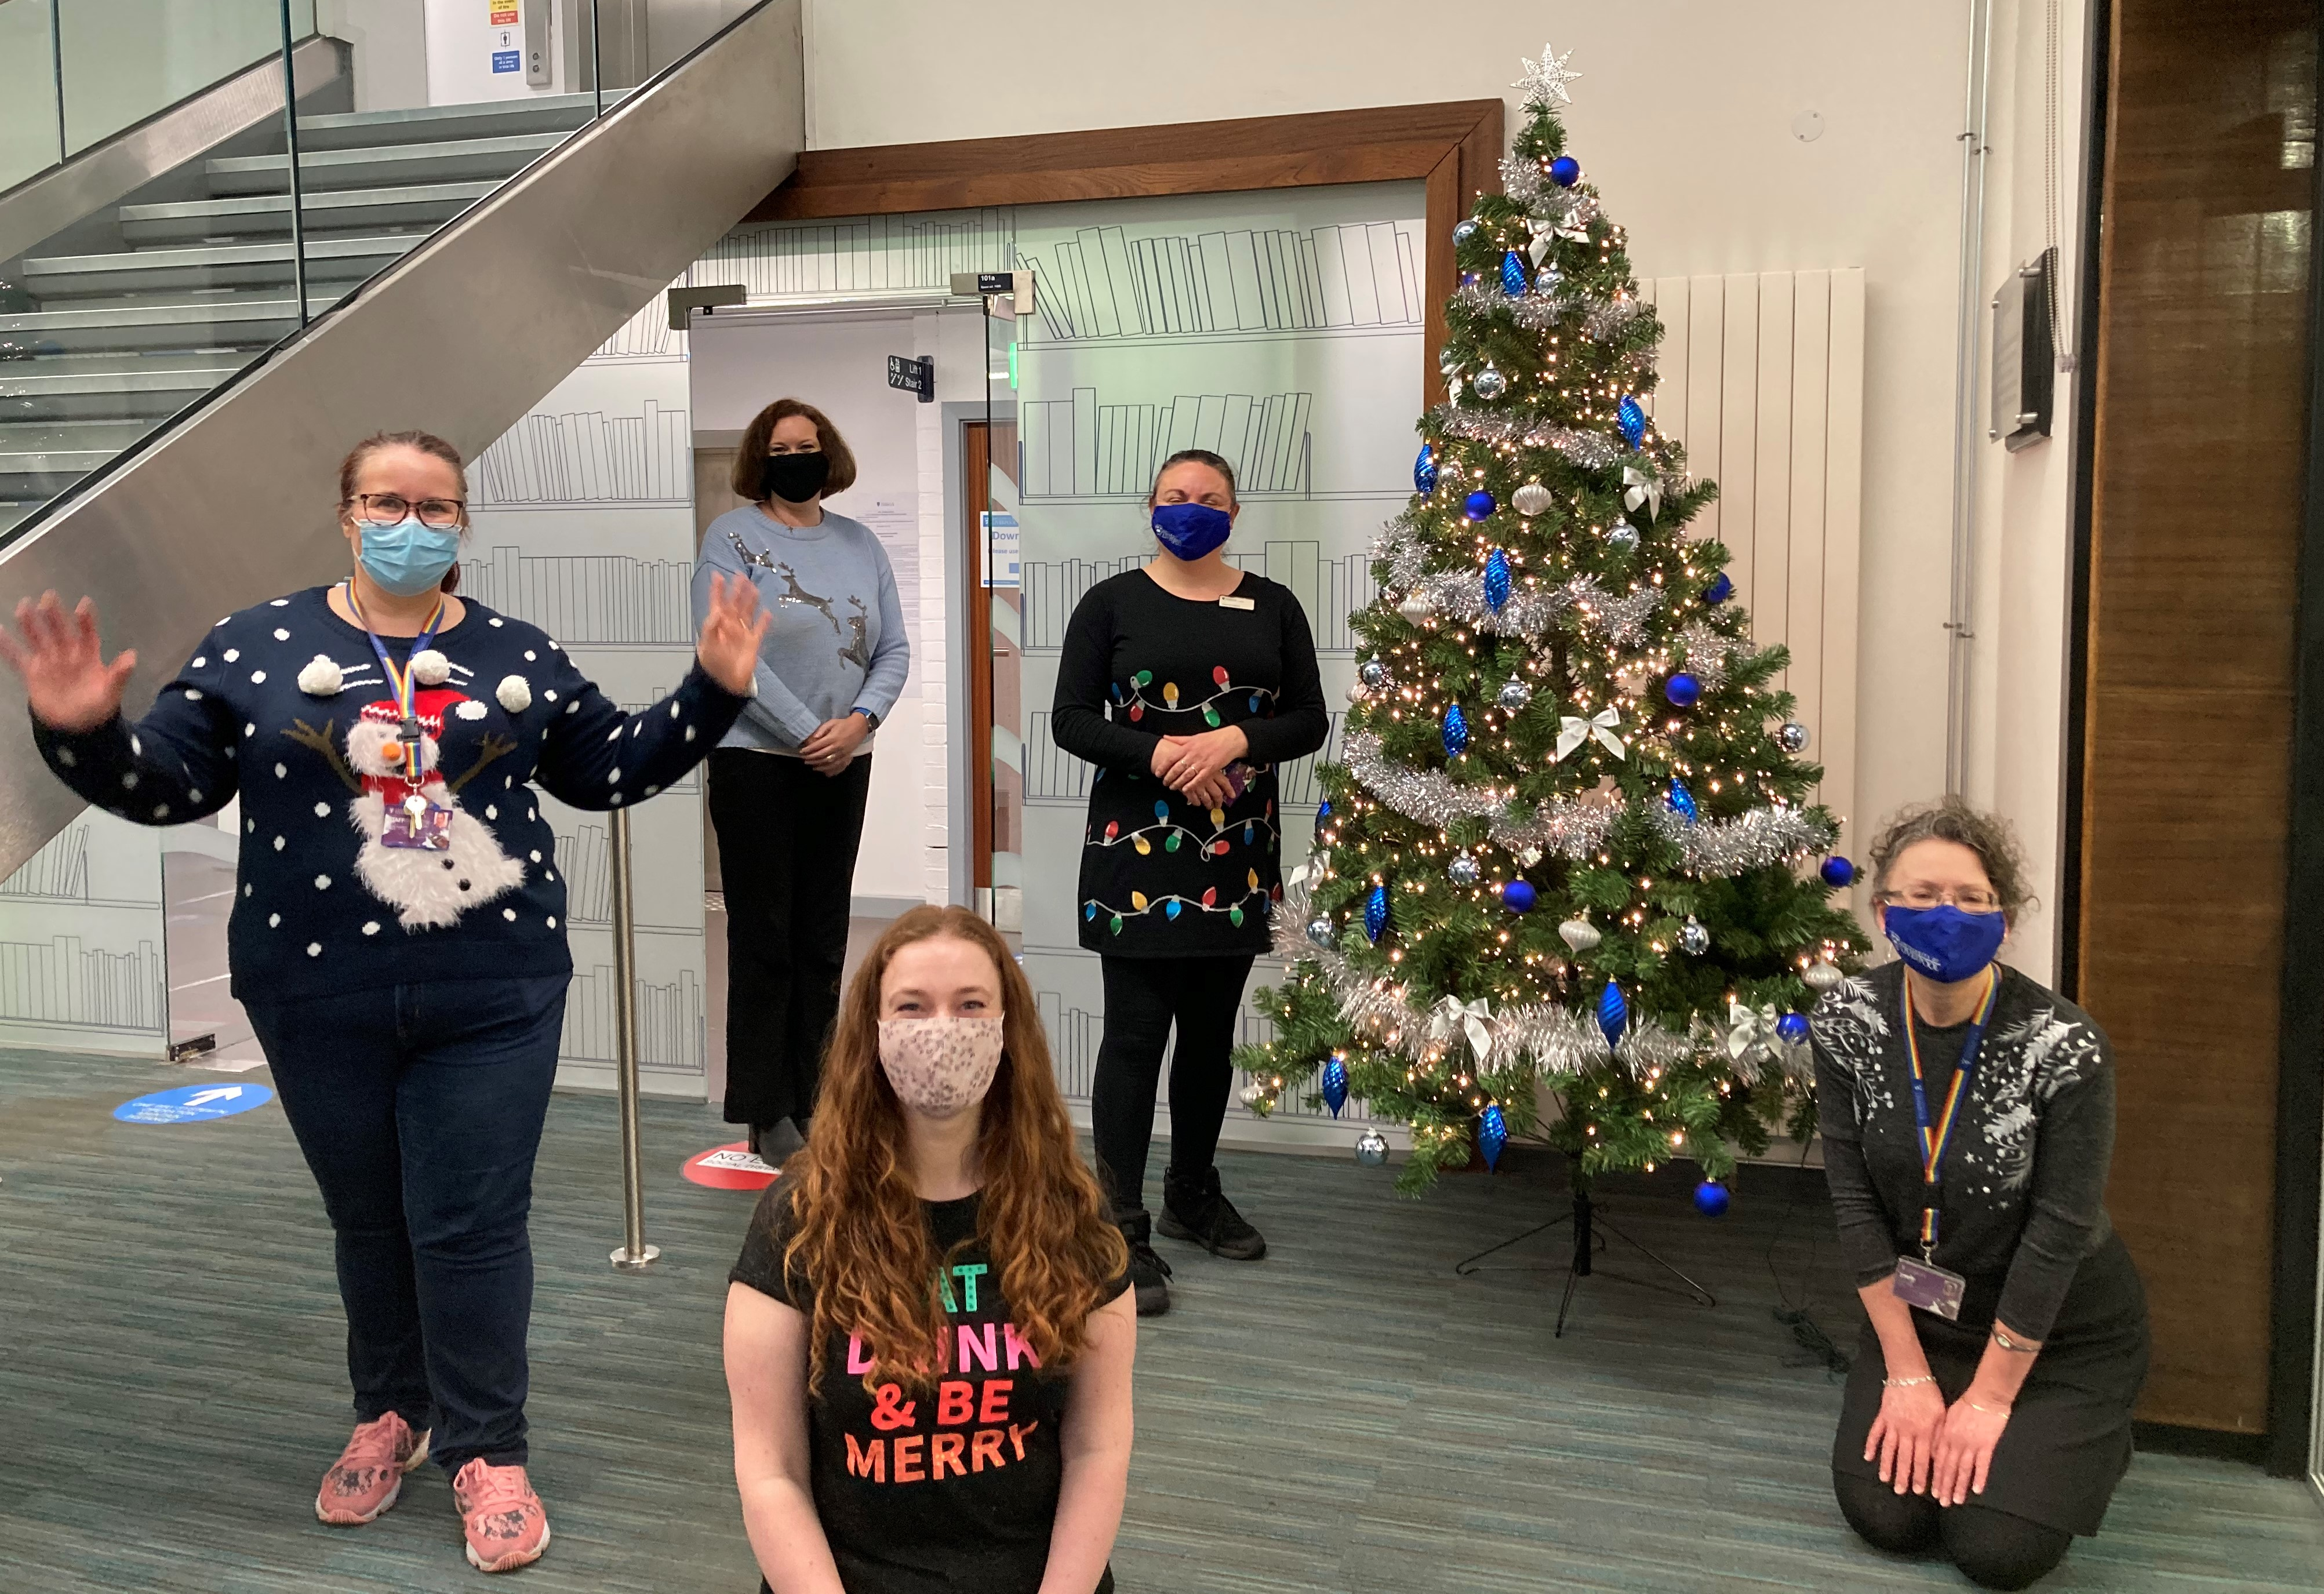 Library staff in Christmas jumpers and face masks in front of Christmas Tree